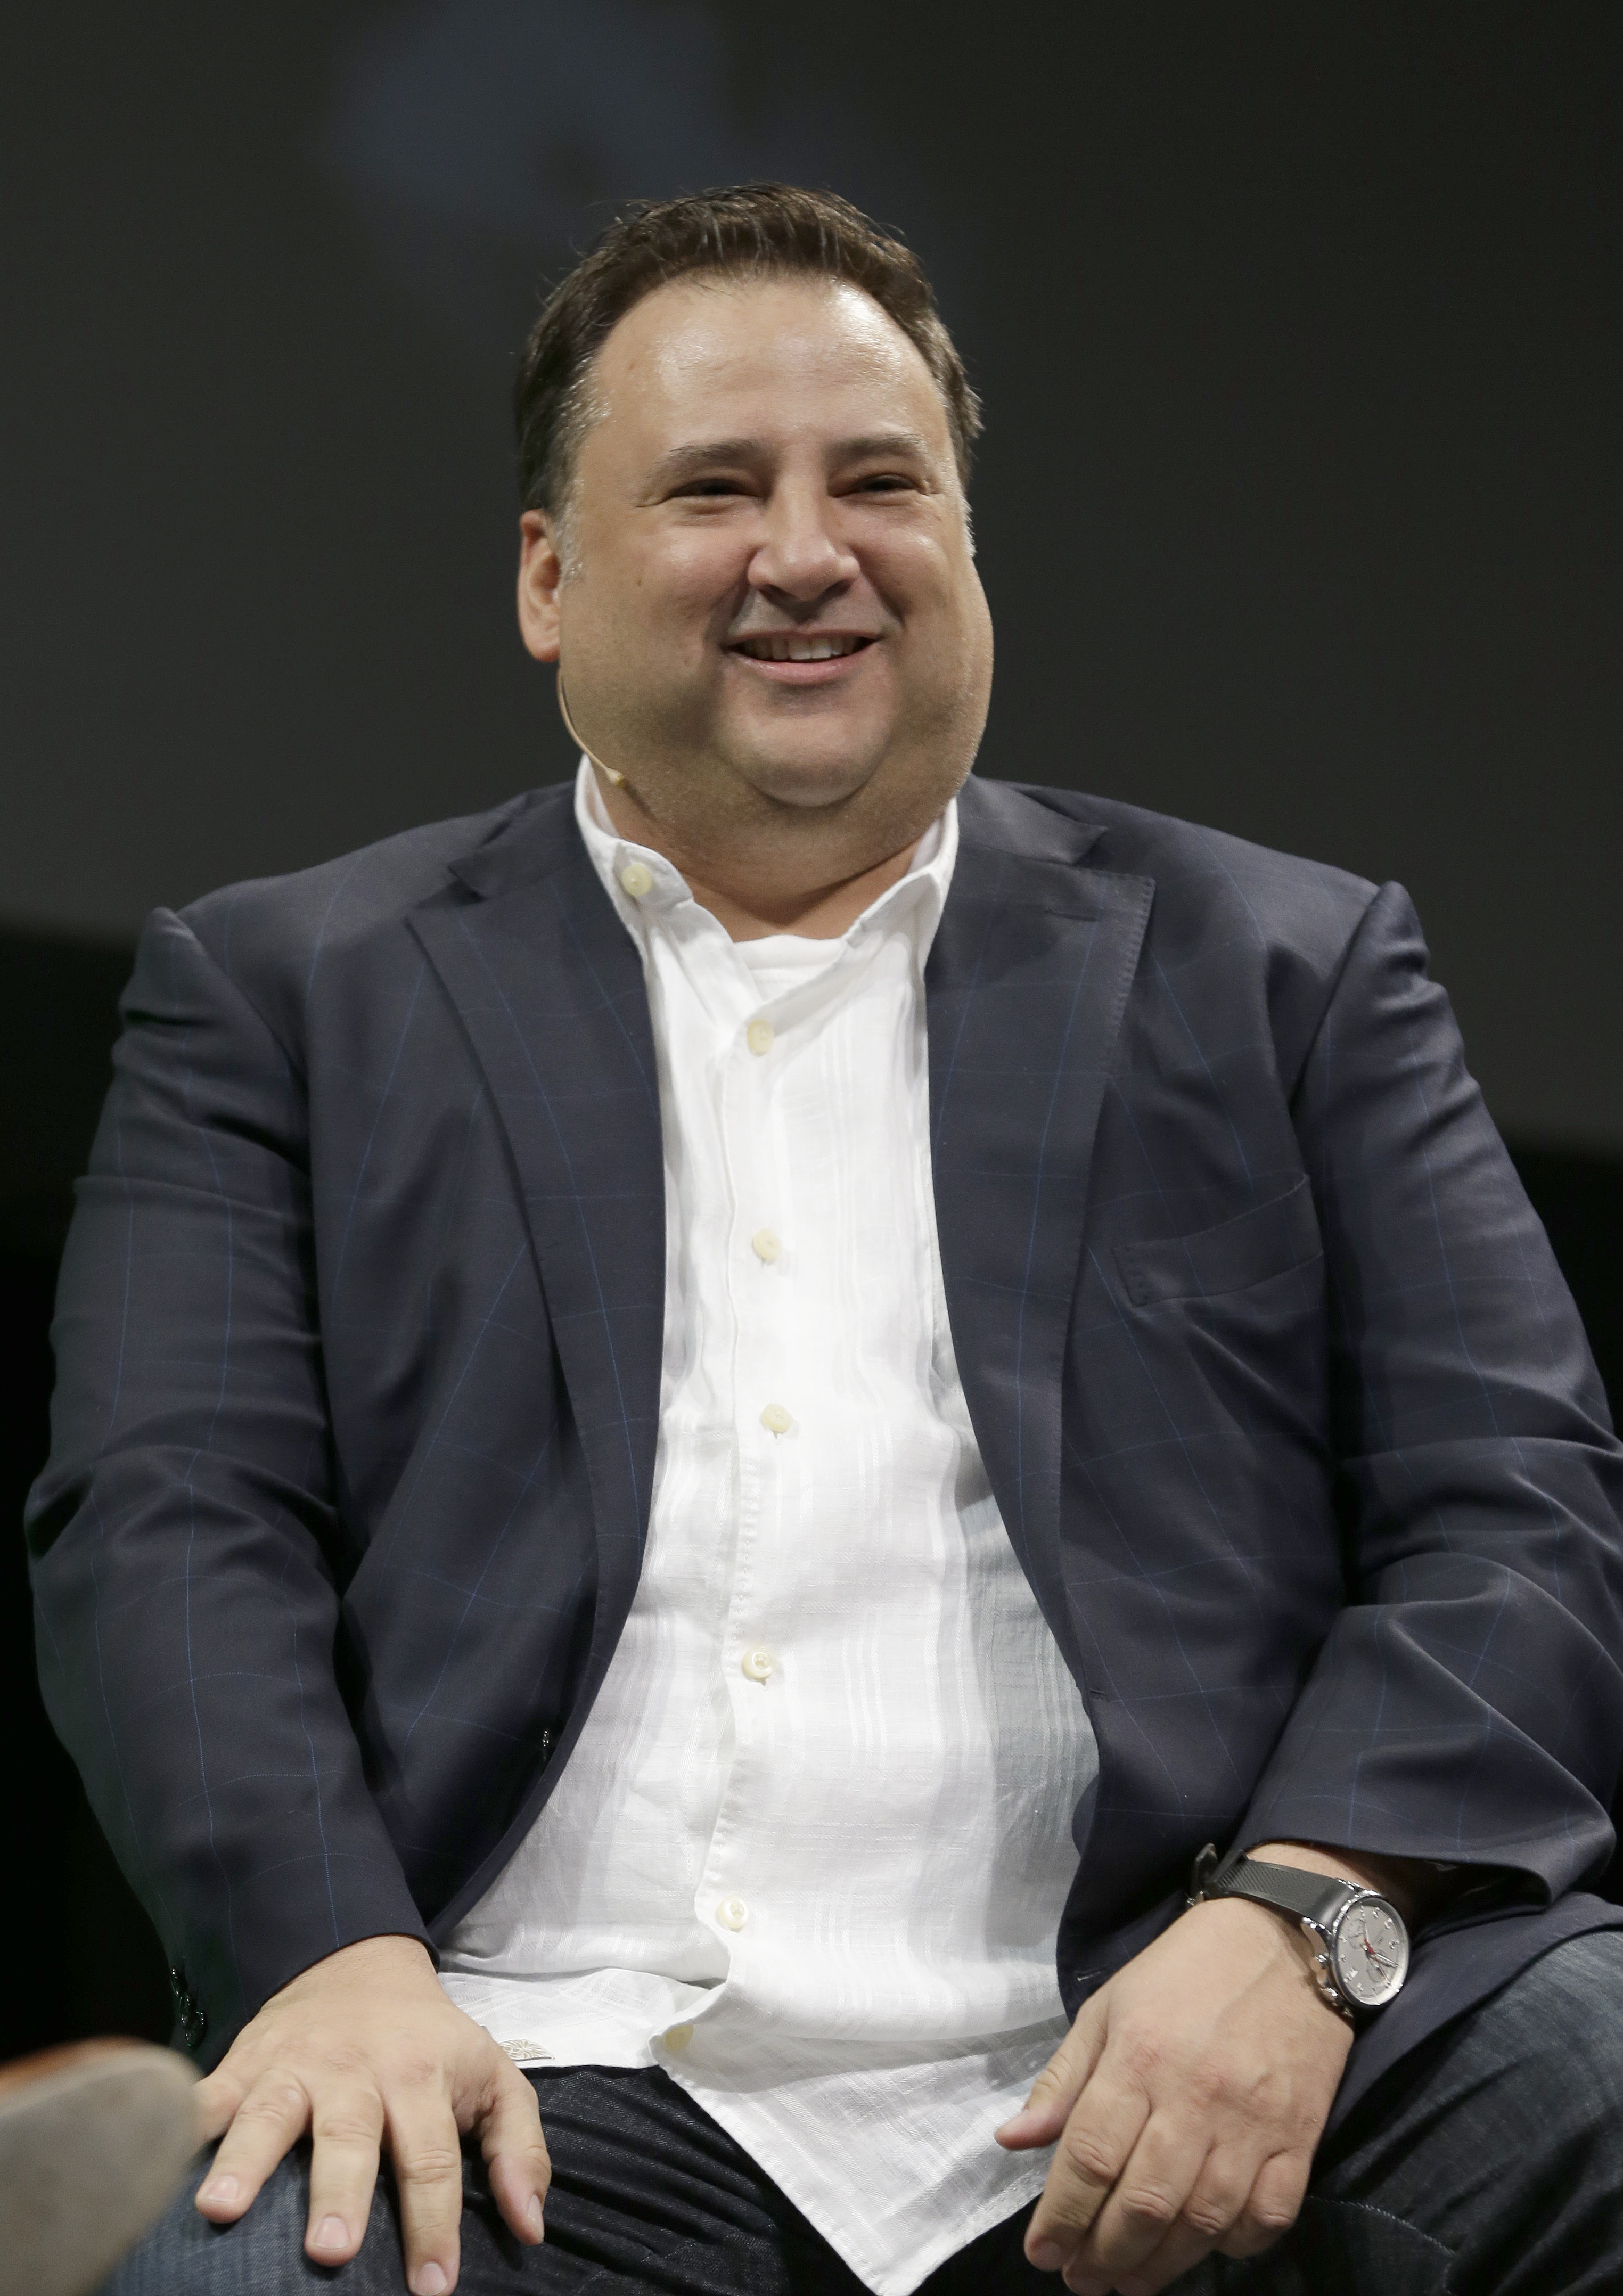 Dallas Stars owner Tom Gaglardi smiles before the team's new hockey logo unveiling in Dallas Tuesday, Sunday, June 4, 2013. (AP Photo/LM Otero)